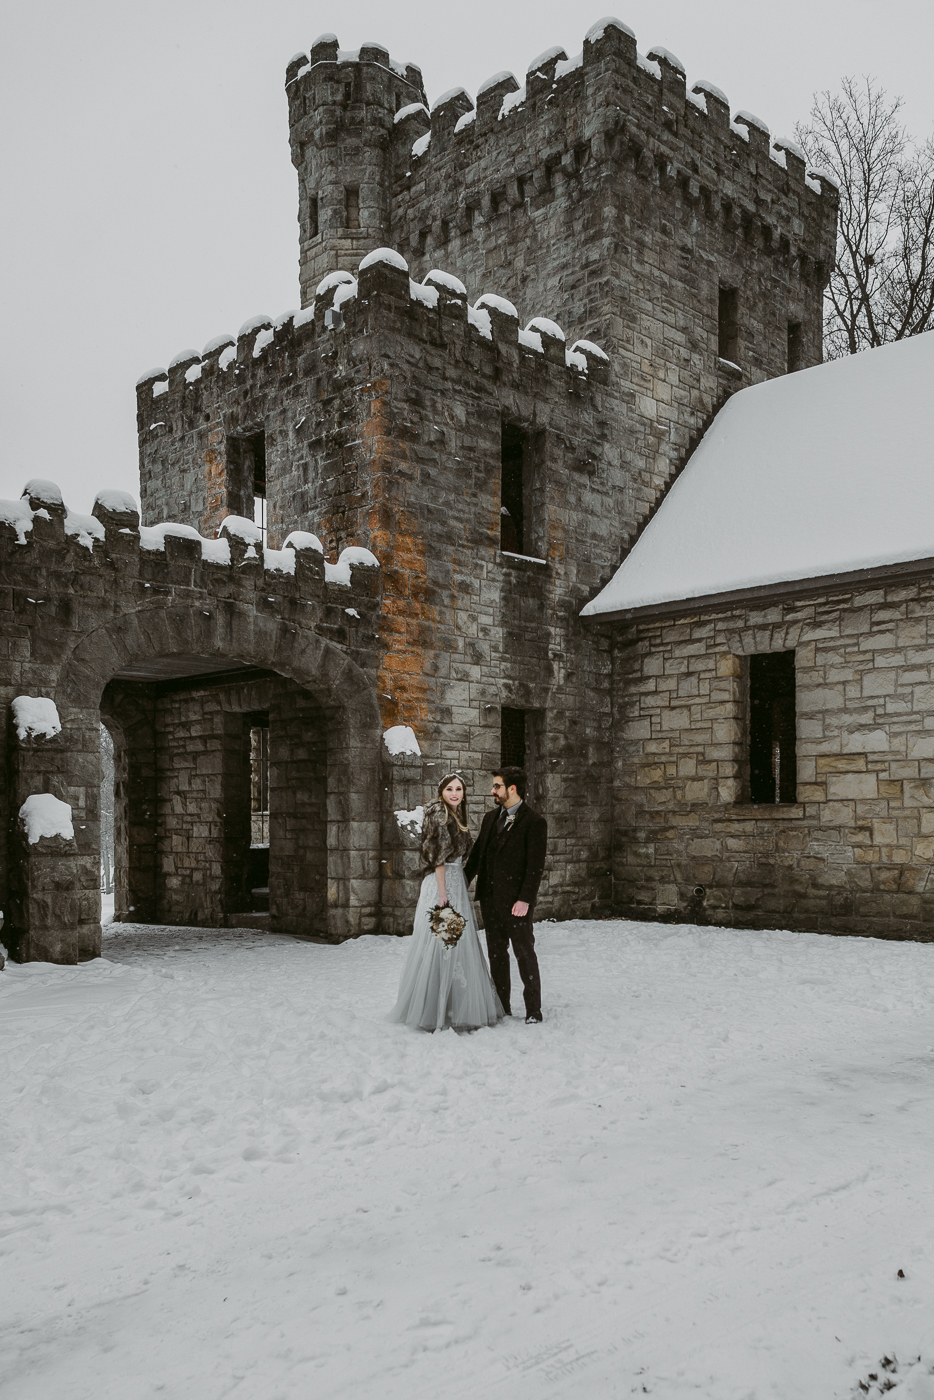 Squires-Castle-Winter-Wedding-18.jpg